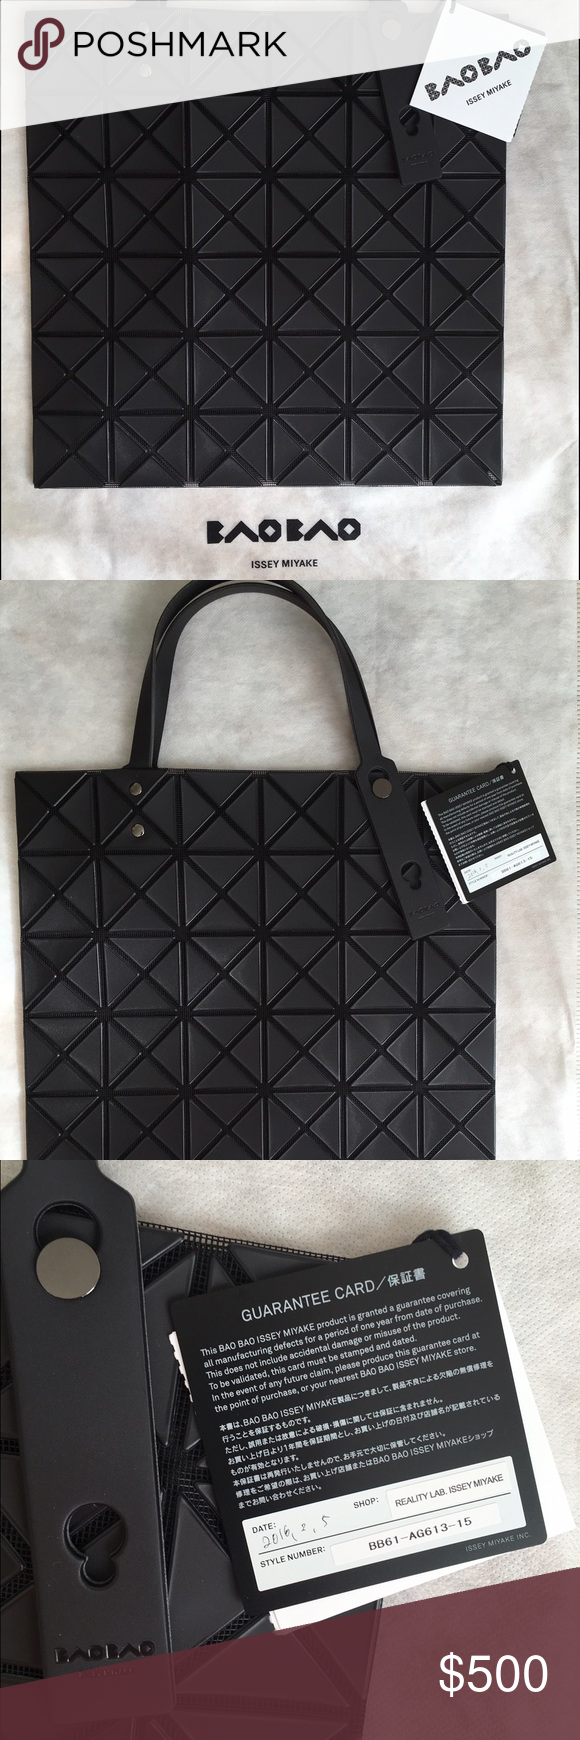 Bao bao Issey miyake Lucent 1 tote bag Bao bao bag, Lucent 1 tote bag,  matte black ORIGINAL!! Open to trade with a white or beije lucent! c145aefed6